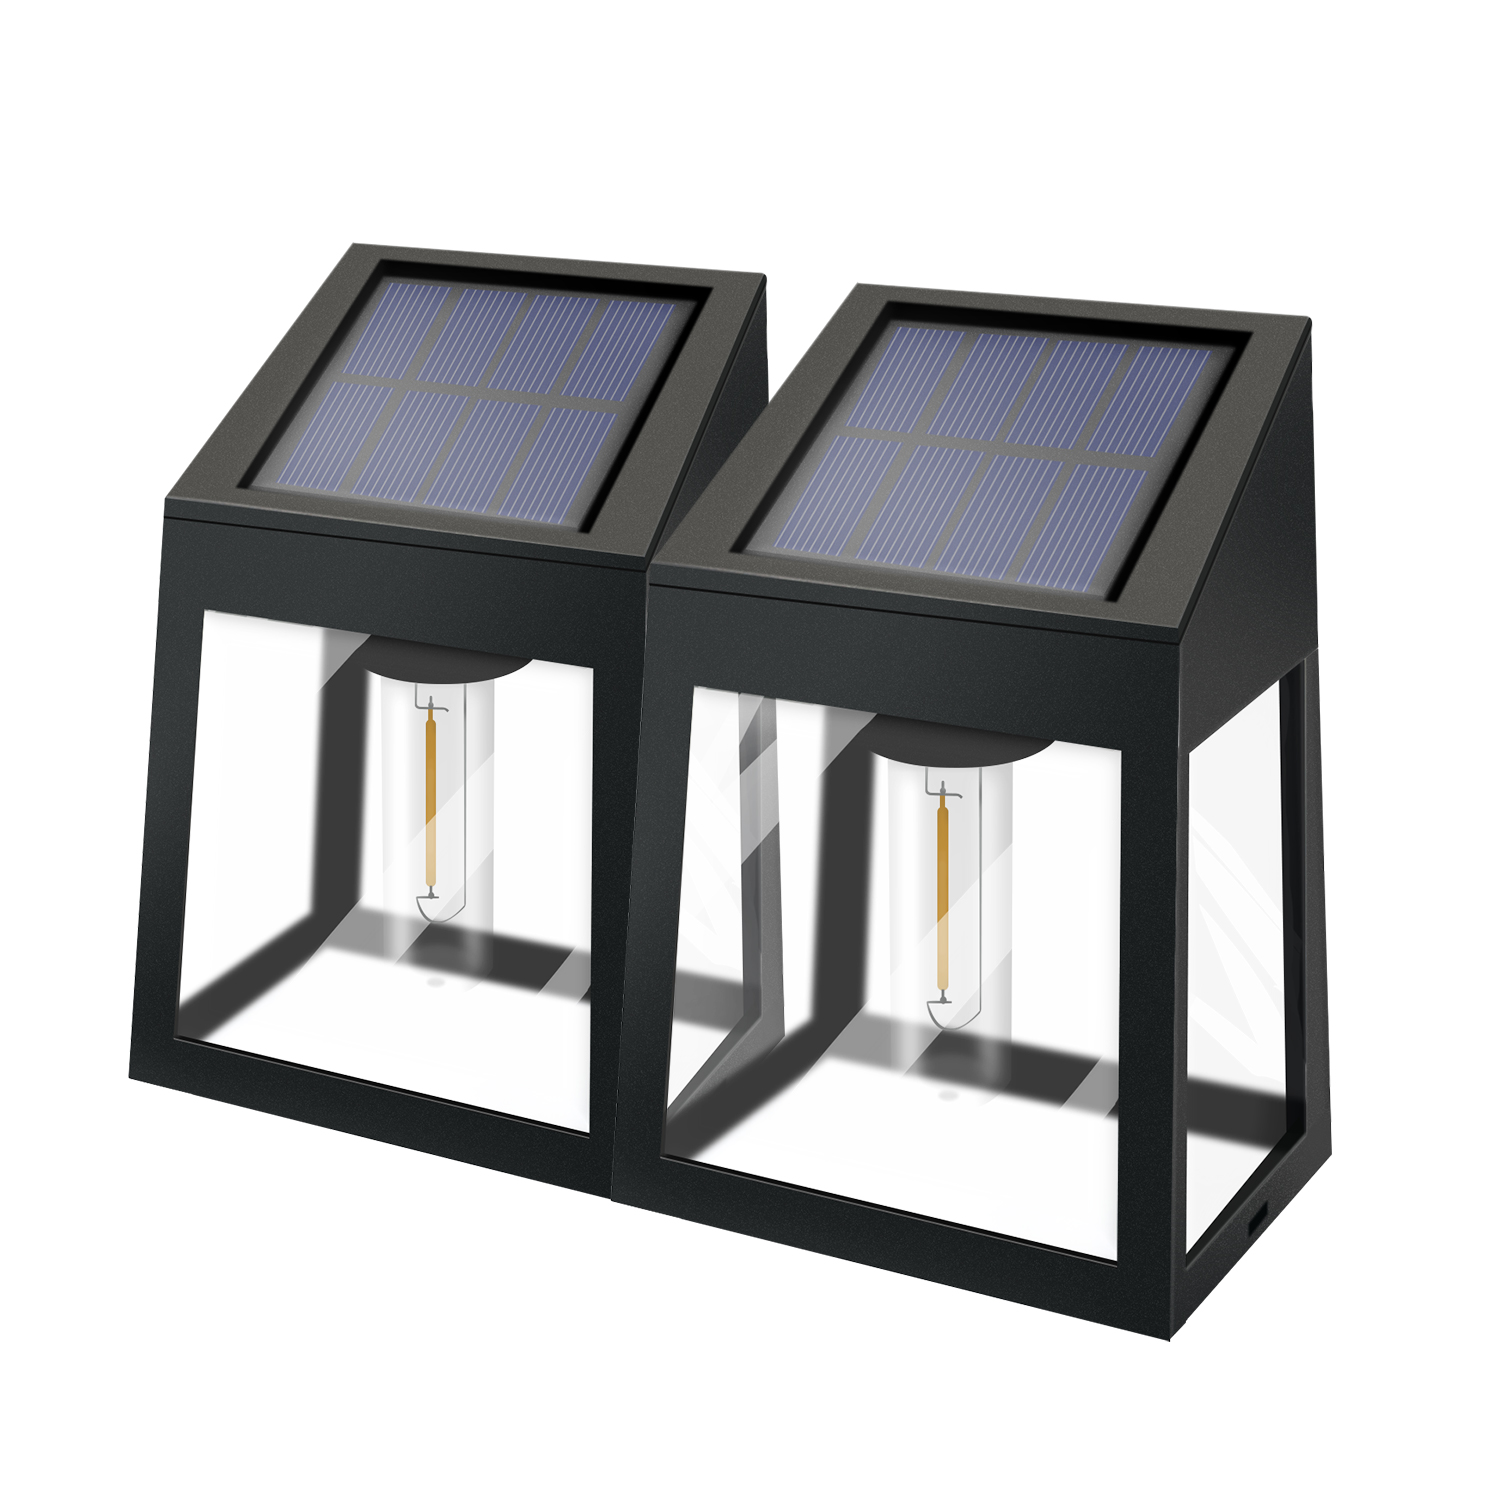 Professional Solar Light no wires needed outside solar wall light of outdoor waterproof